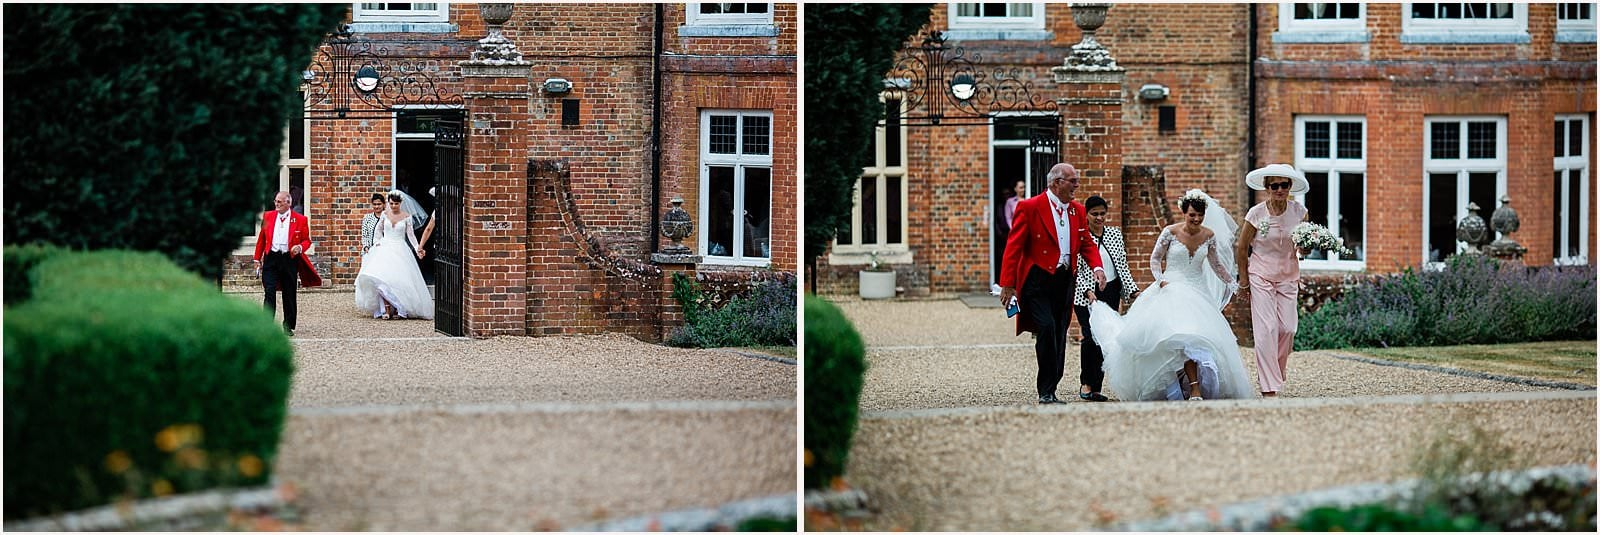 Wotton House Wedding - Justine + Rob's stunning wedding 22